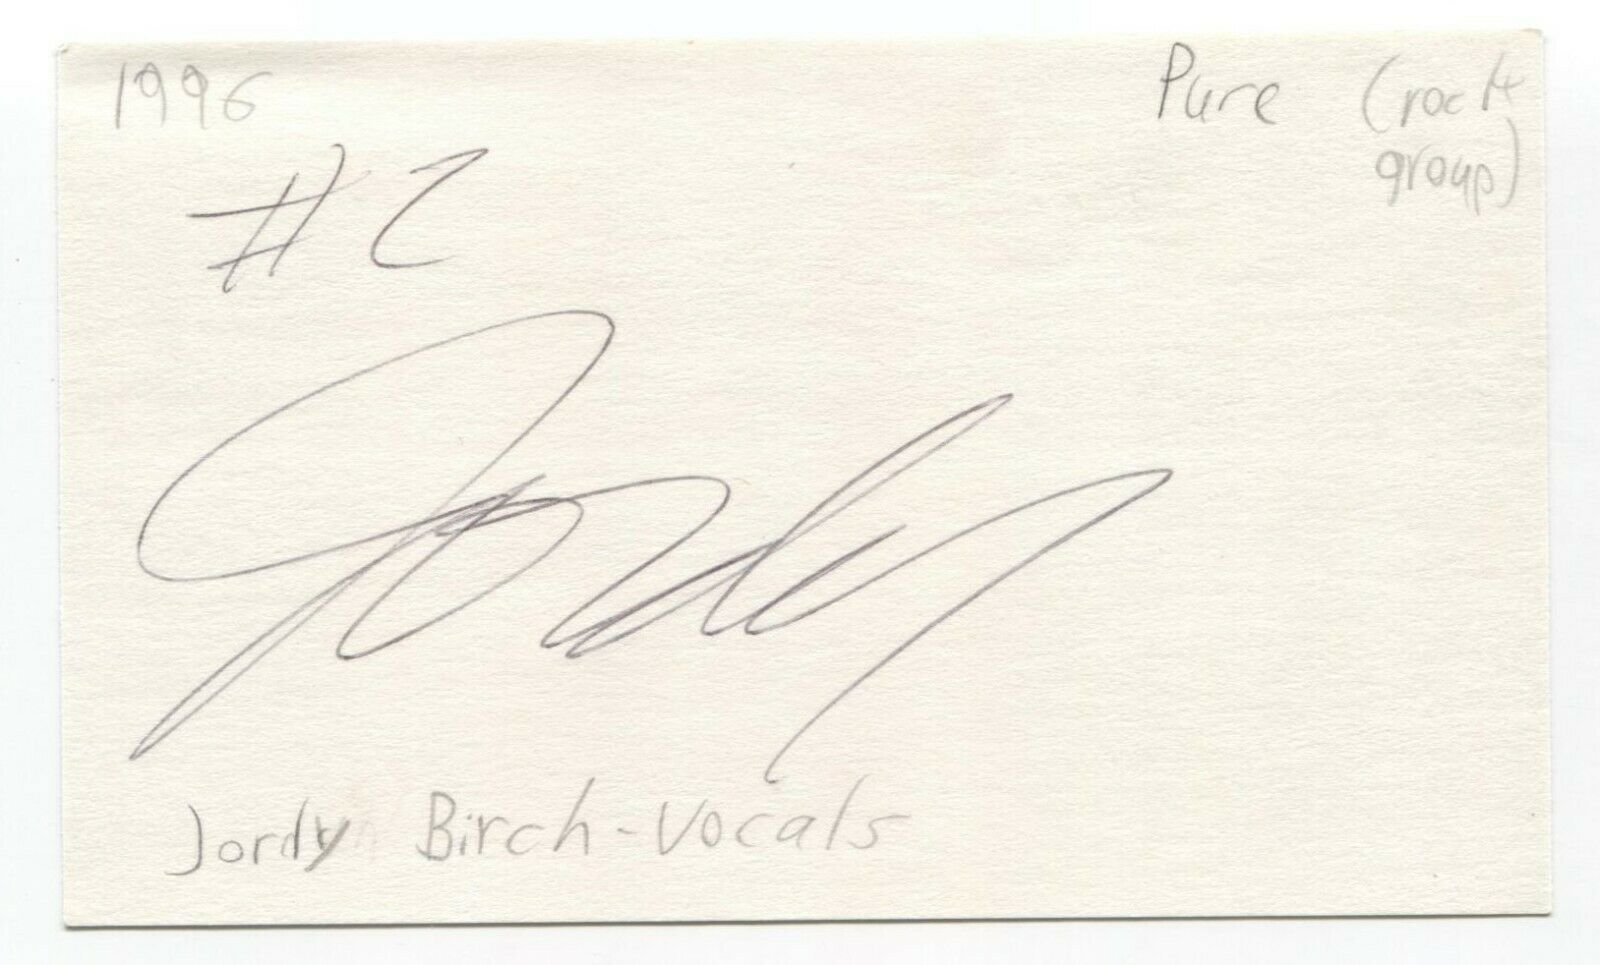 Pure - Jody Birch Signed 3x5 Index Card Autographed Signature Band